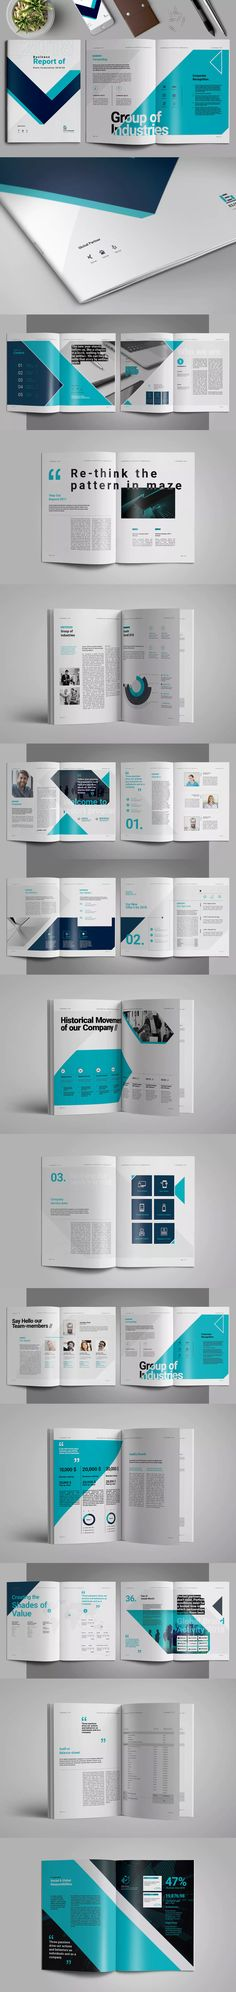 Report Brochure Template InDesign INDD A4 and US Letter Size